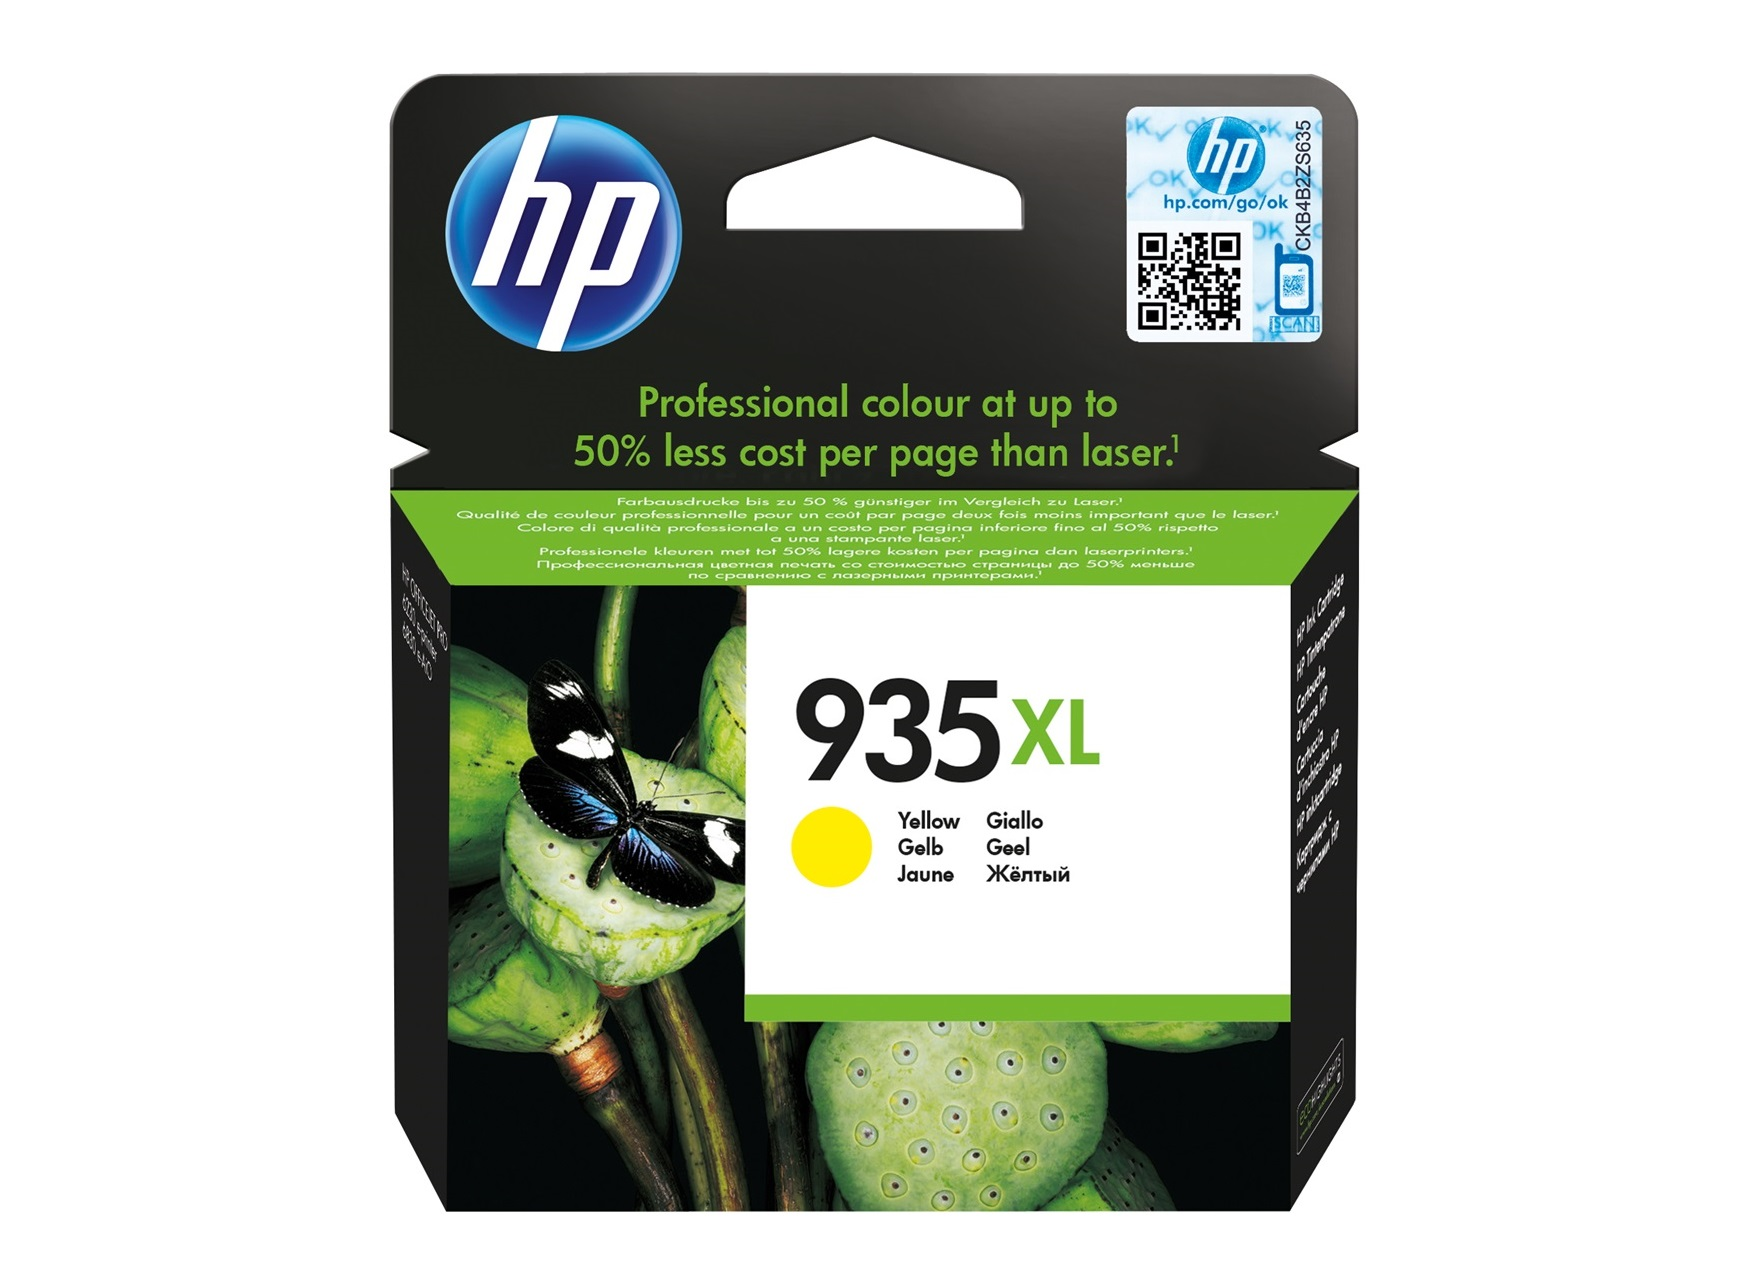 HP 935XL Yellow INK CARTRIDGE สีเหลือง